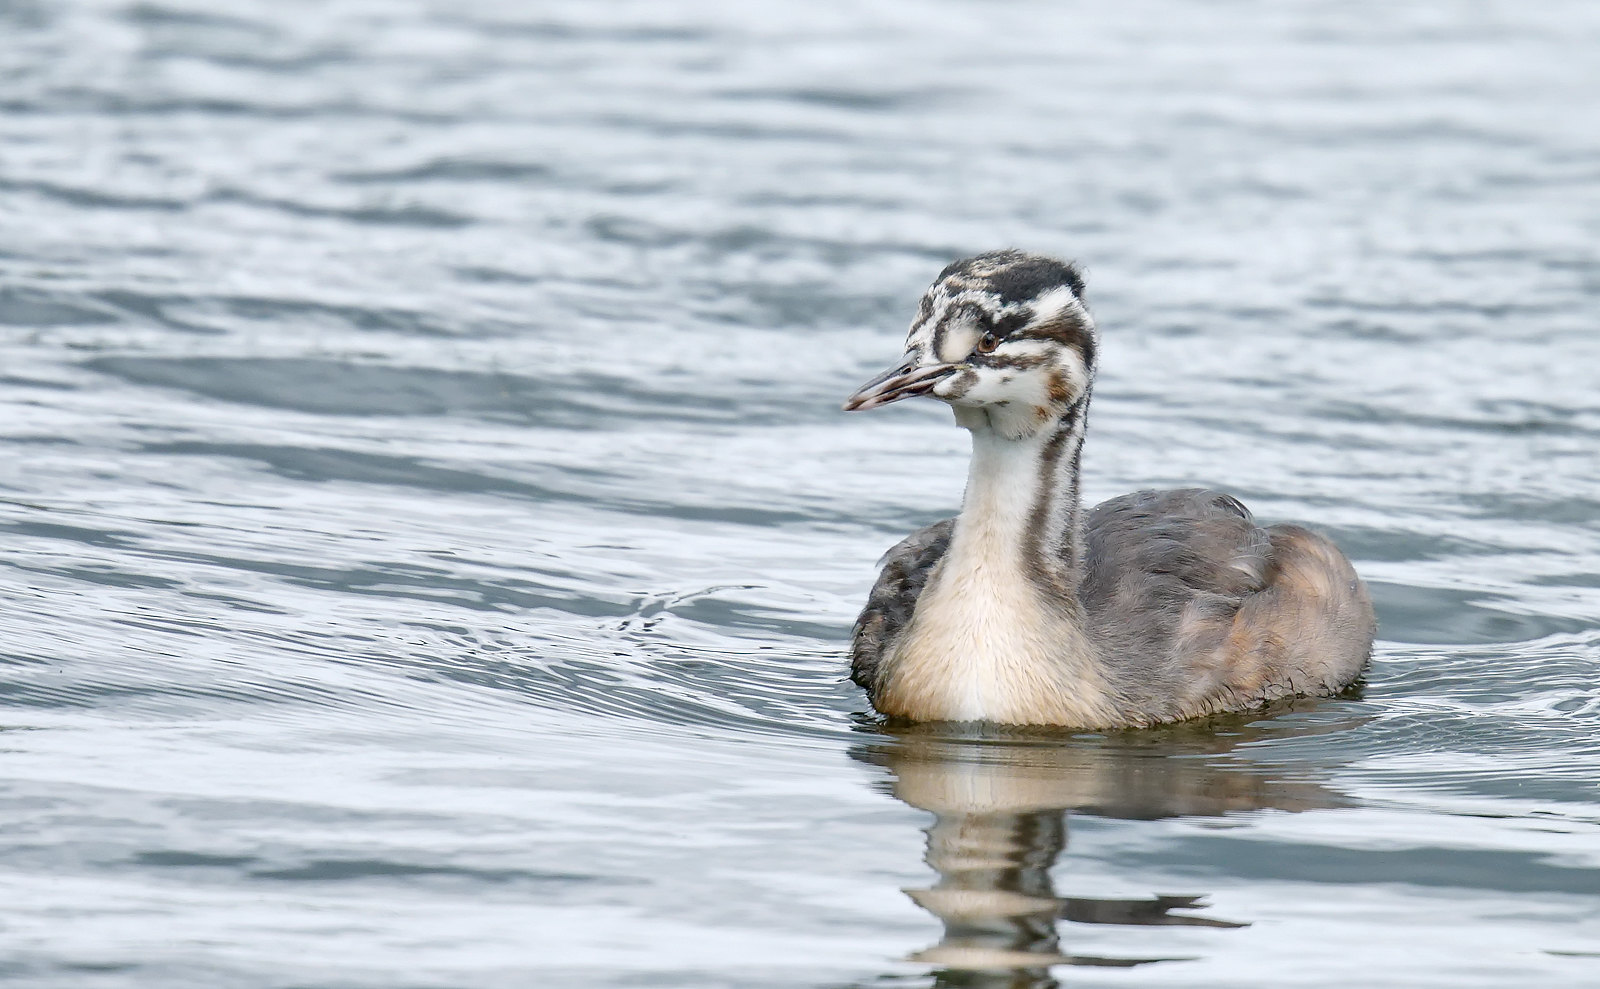 Great Crested Grebe - Juvenile